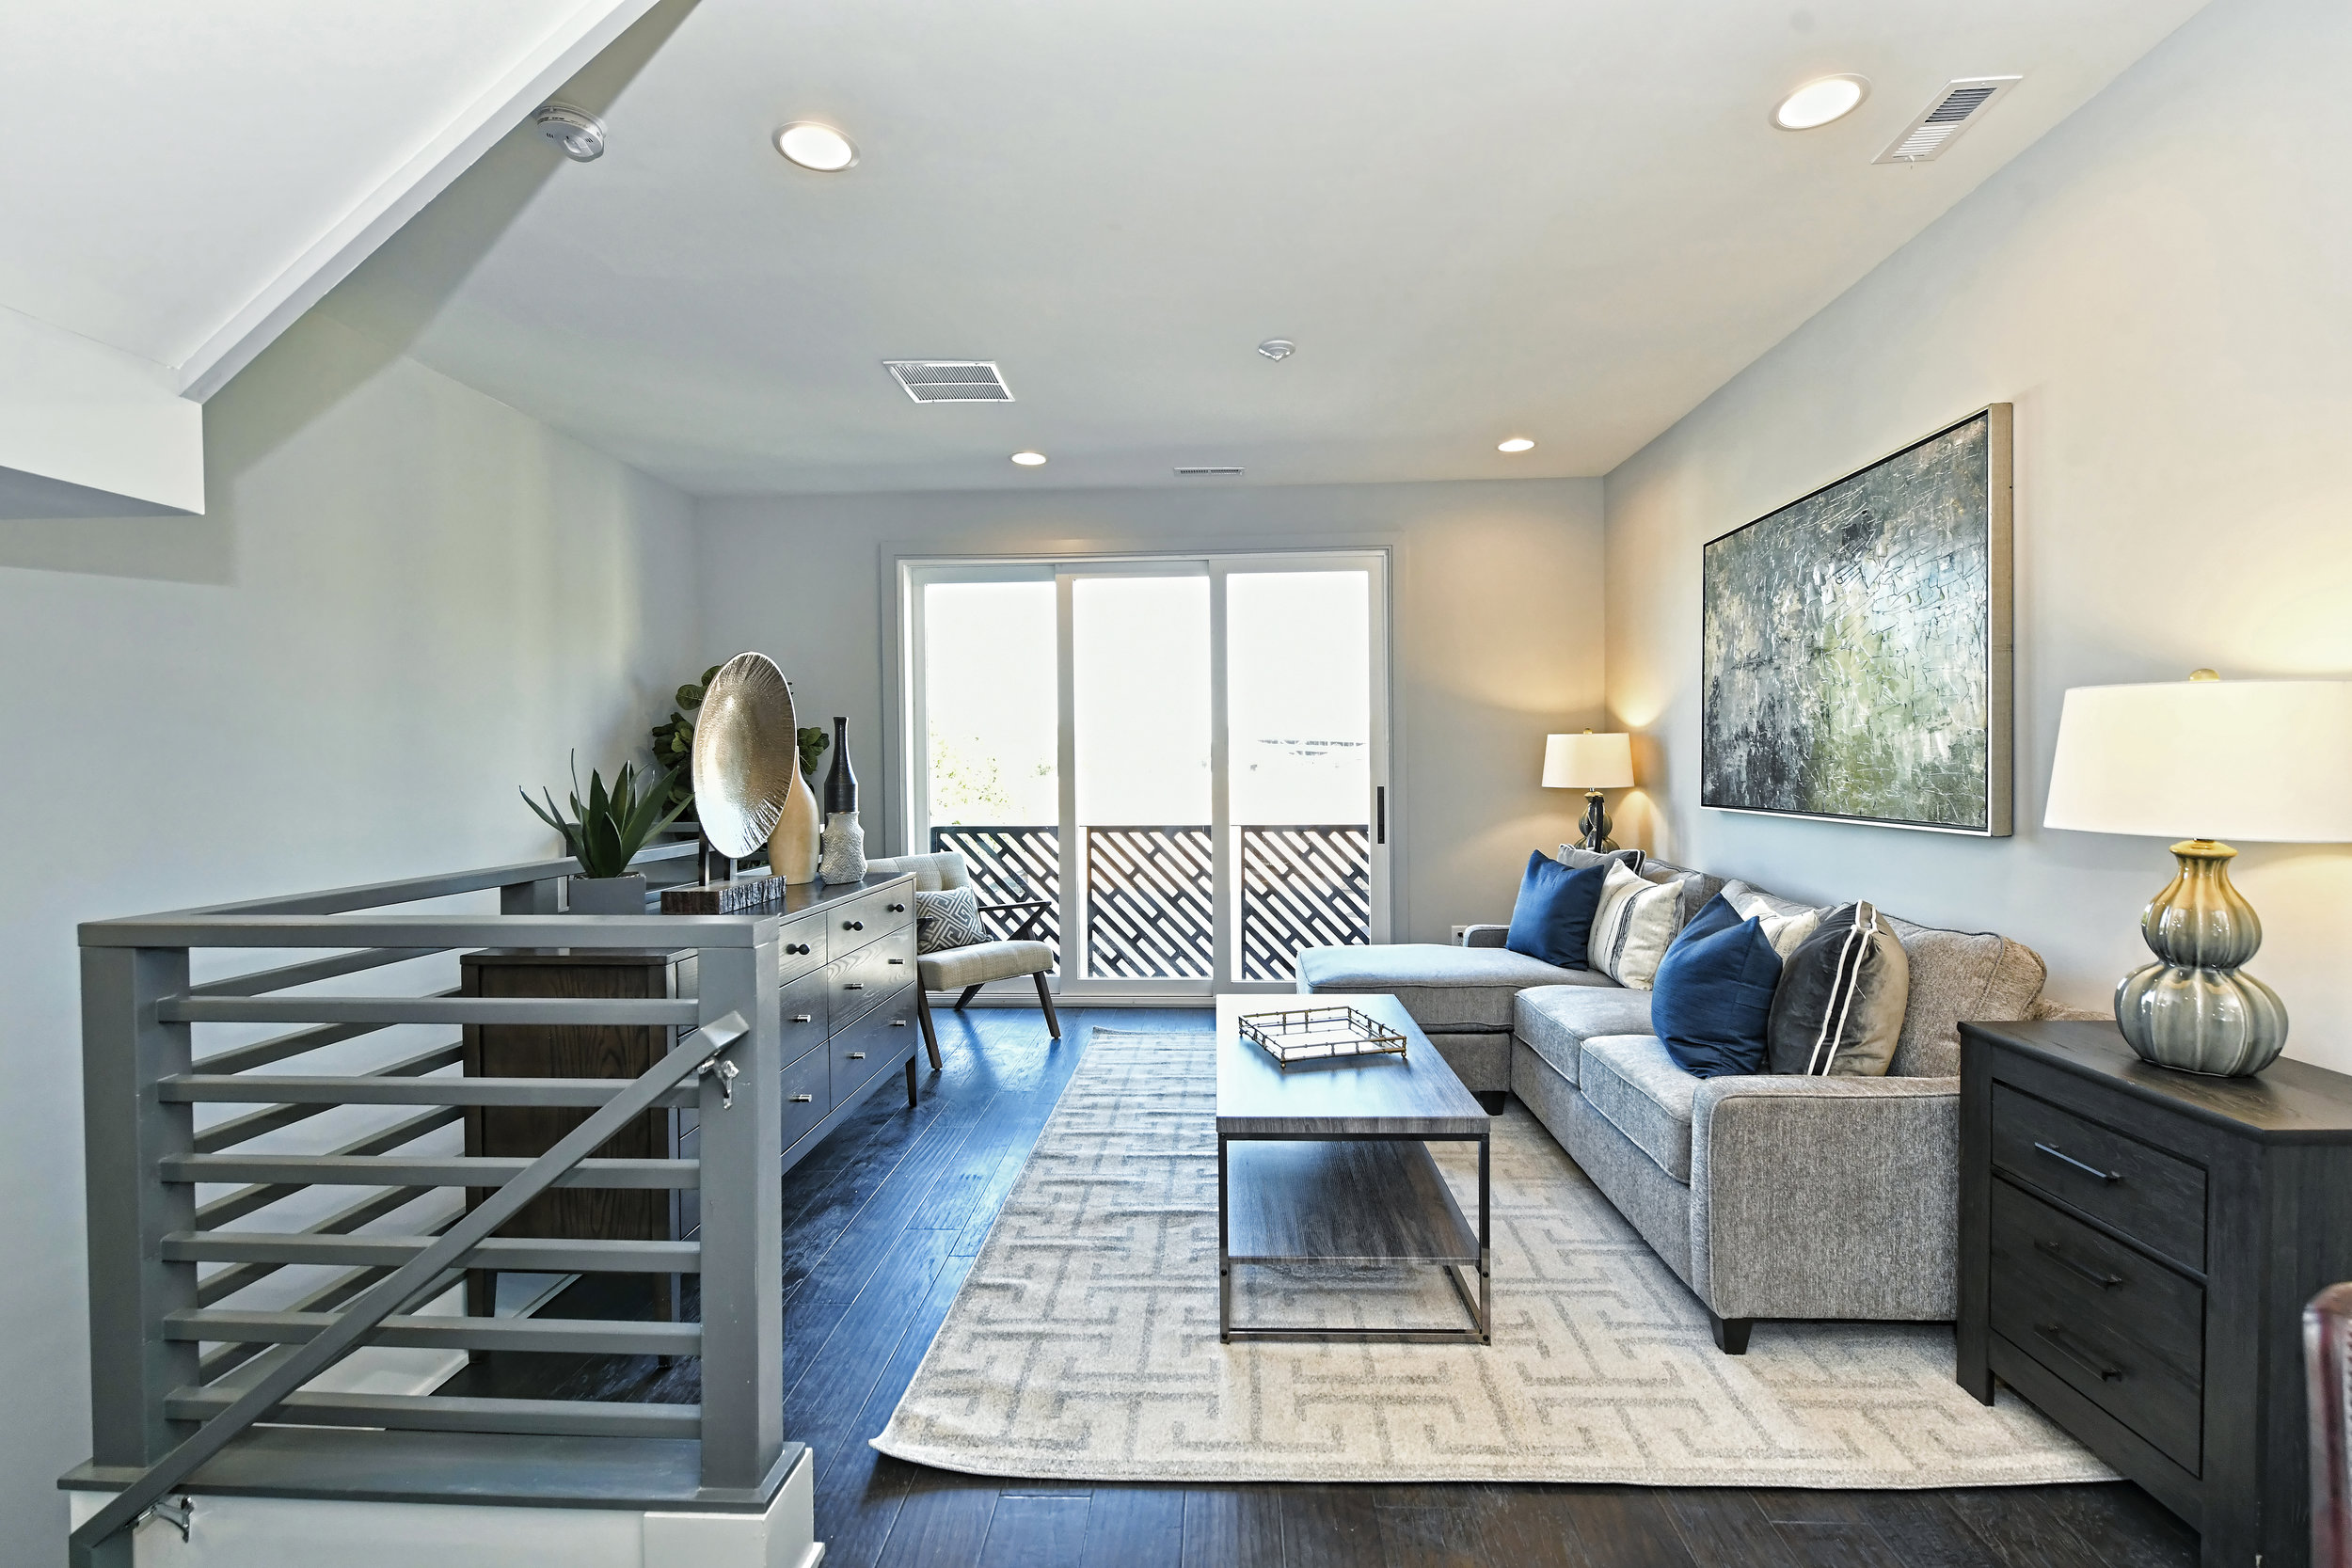 townhomes-charlotte-southend-architecture-fmkarchitects